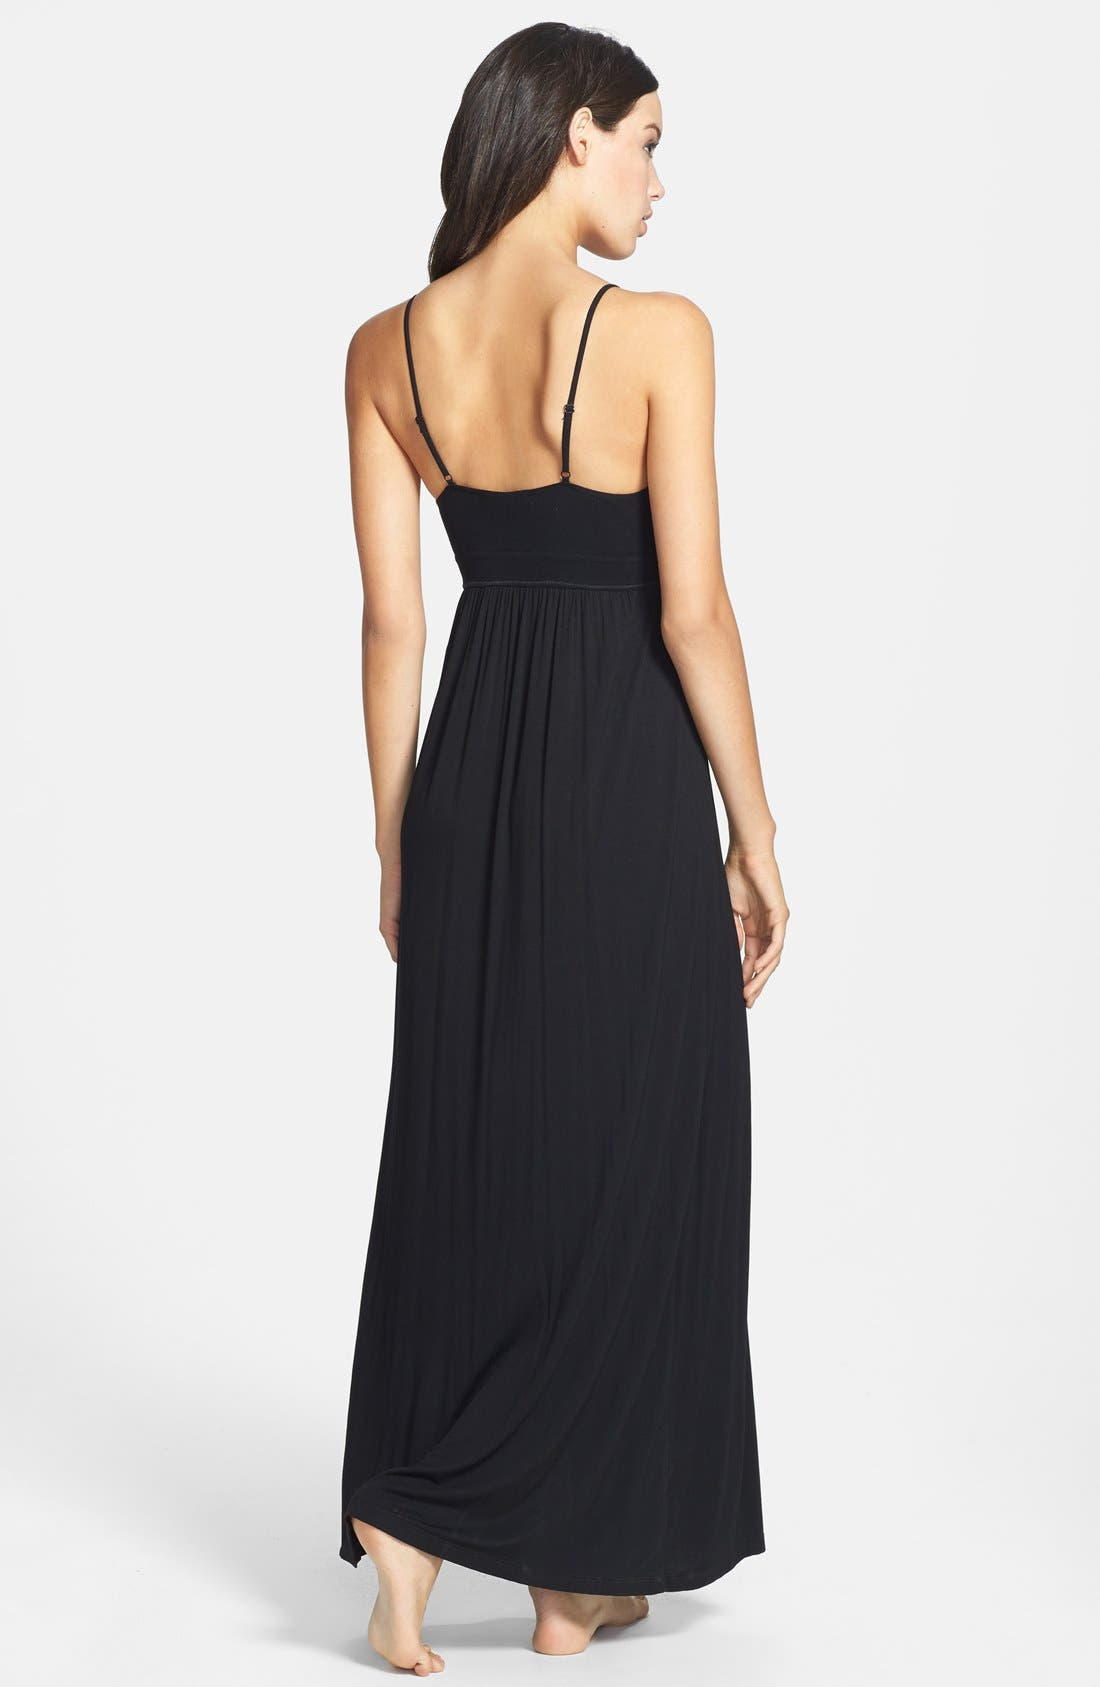 DONNA KARAN NEW YORK,                             Donna Karan Liquid Jersey Empire Waist Nightgown,                             Alternate thumbnail 3, color,                             001